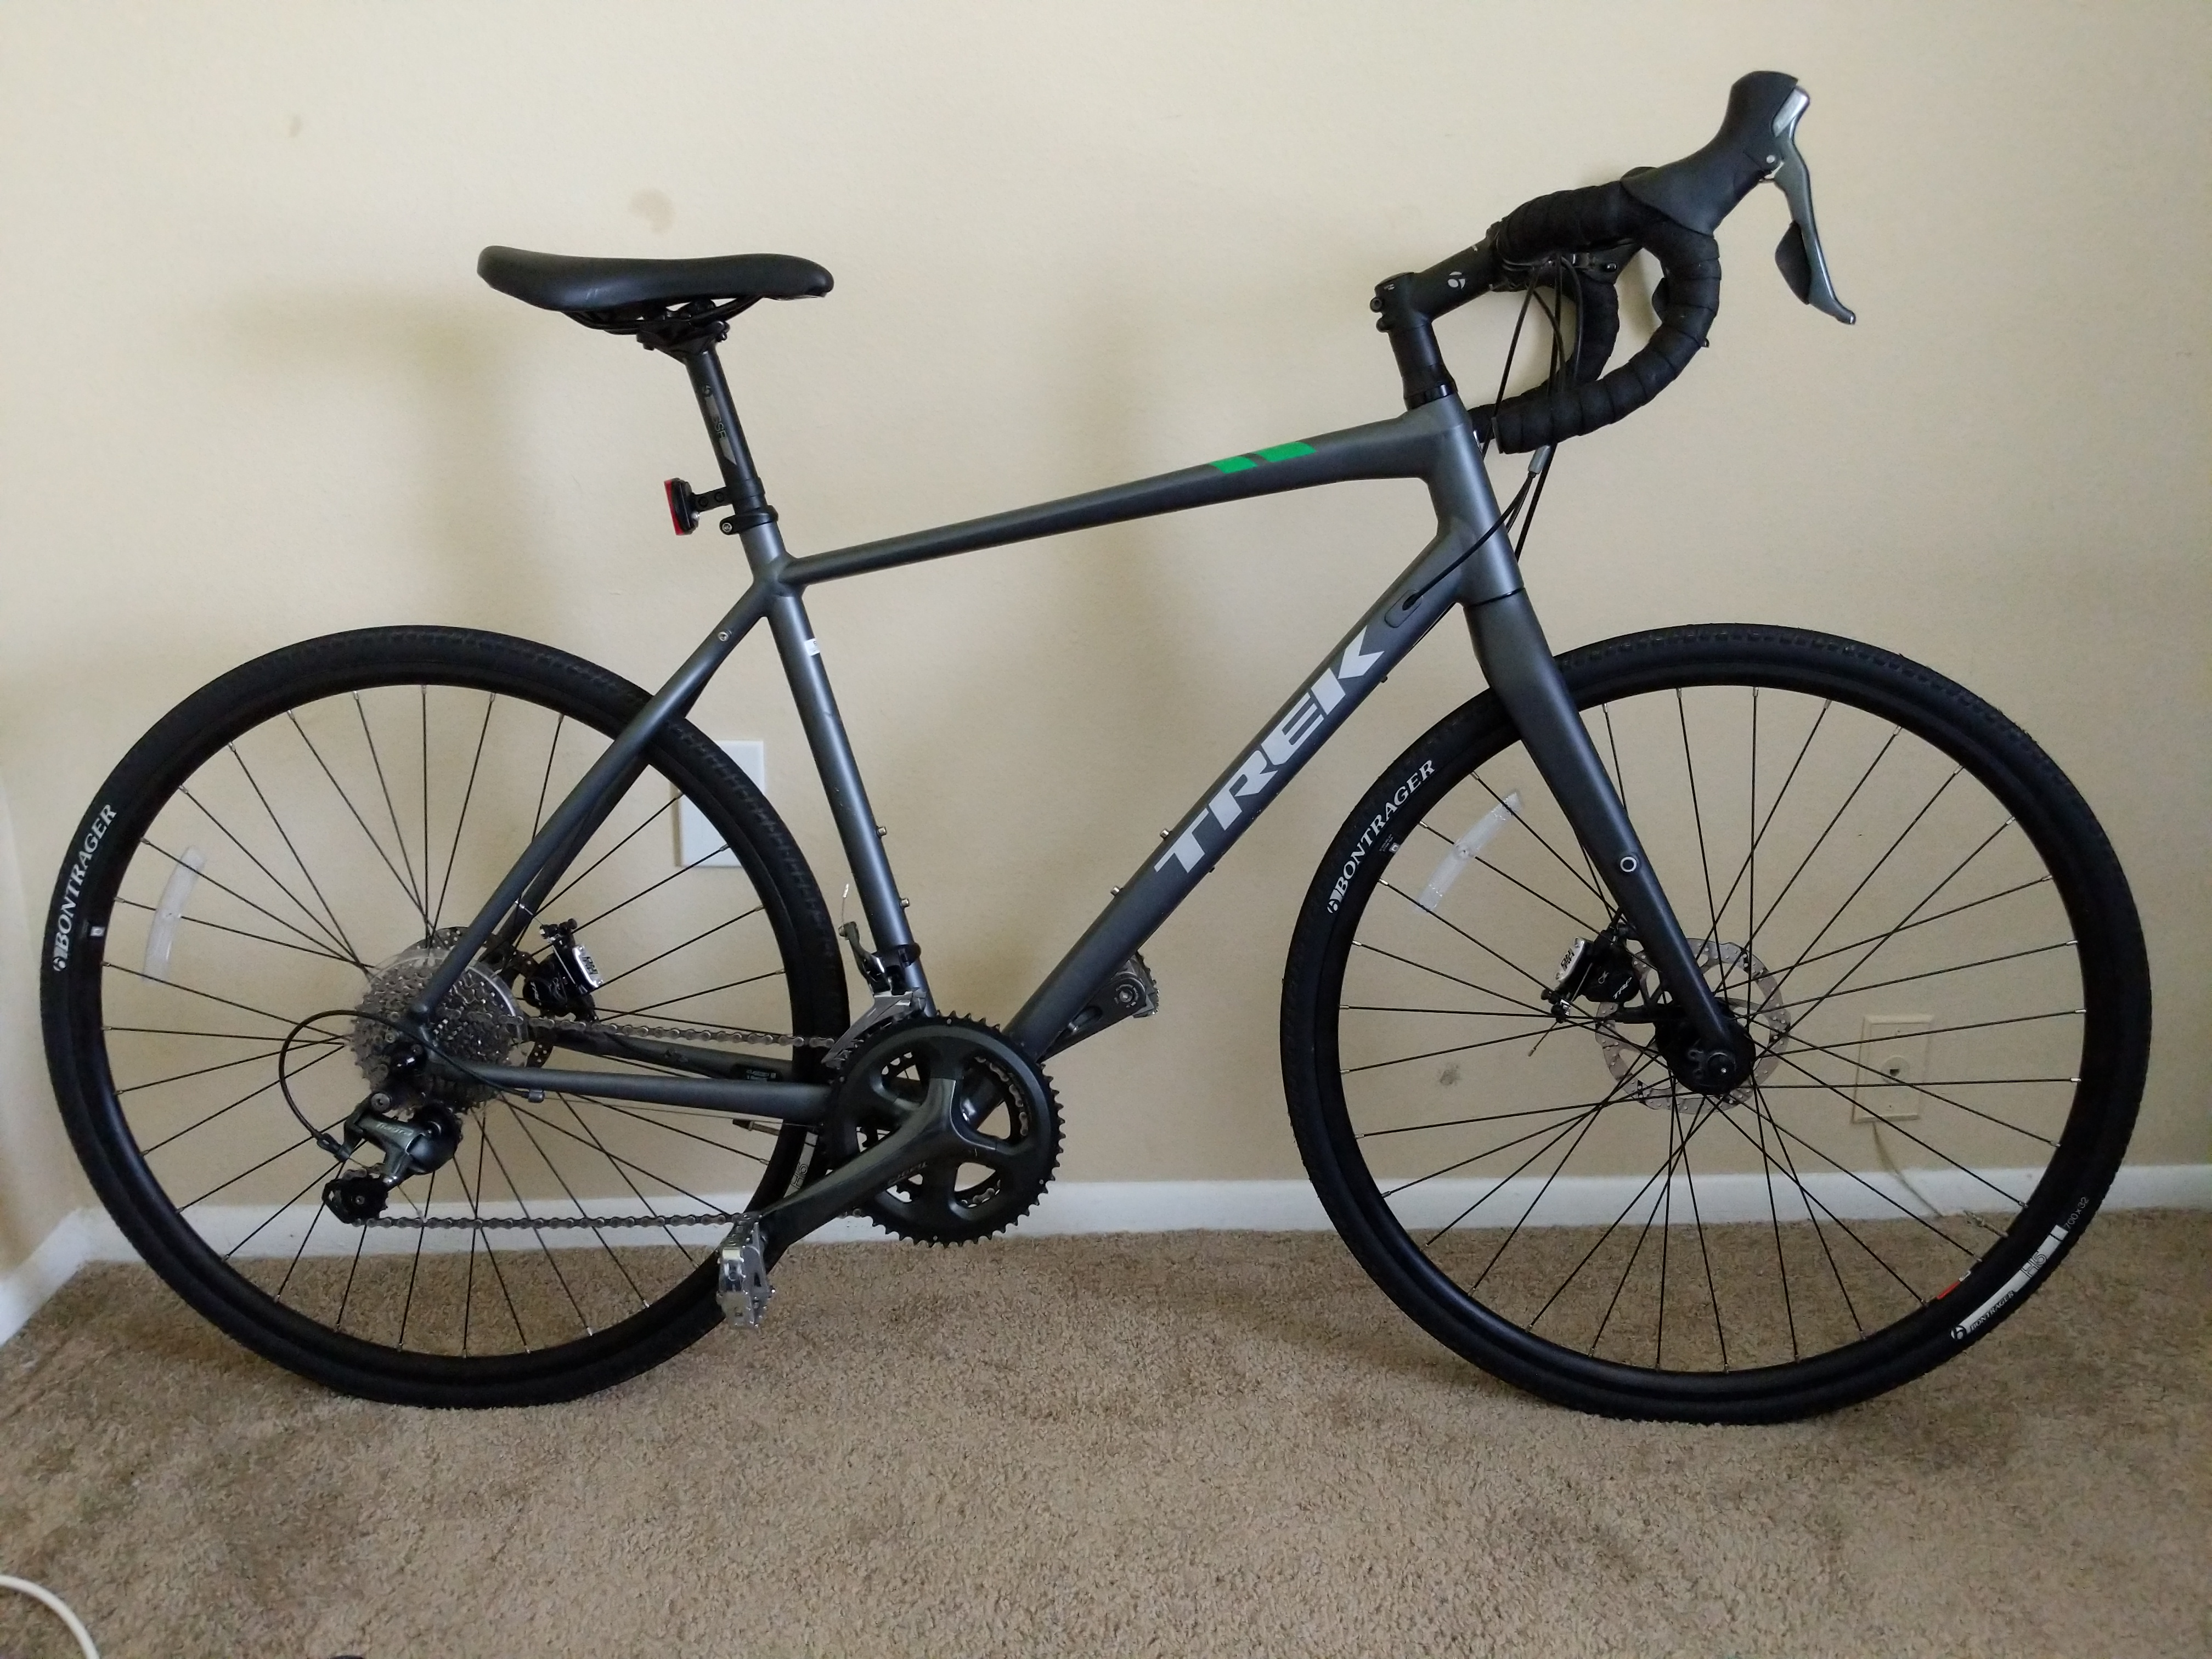 b8517c13a79 Trek CrossRip 2 For Sale - 10241 - BicycleBlueBook.com